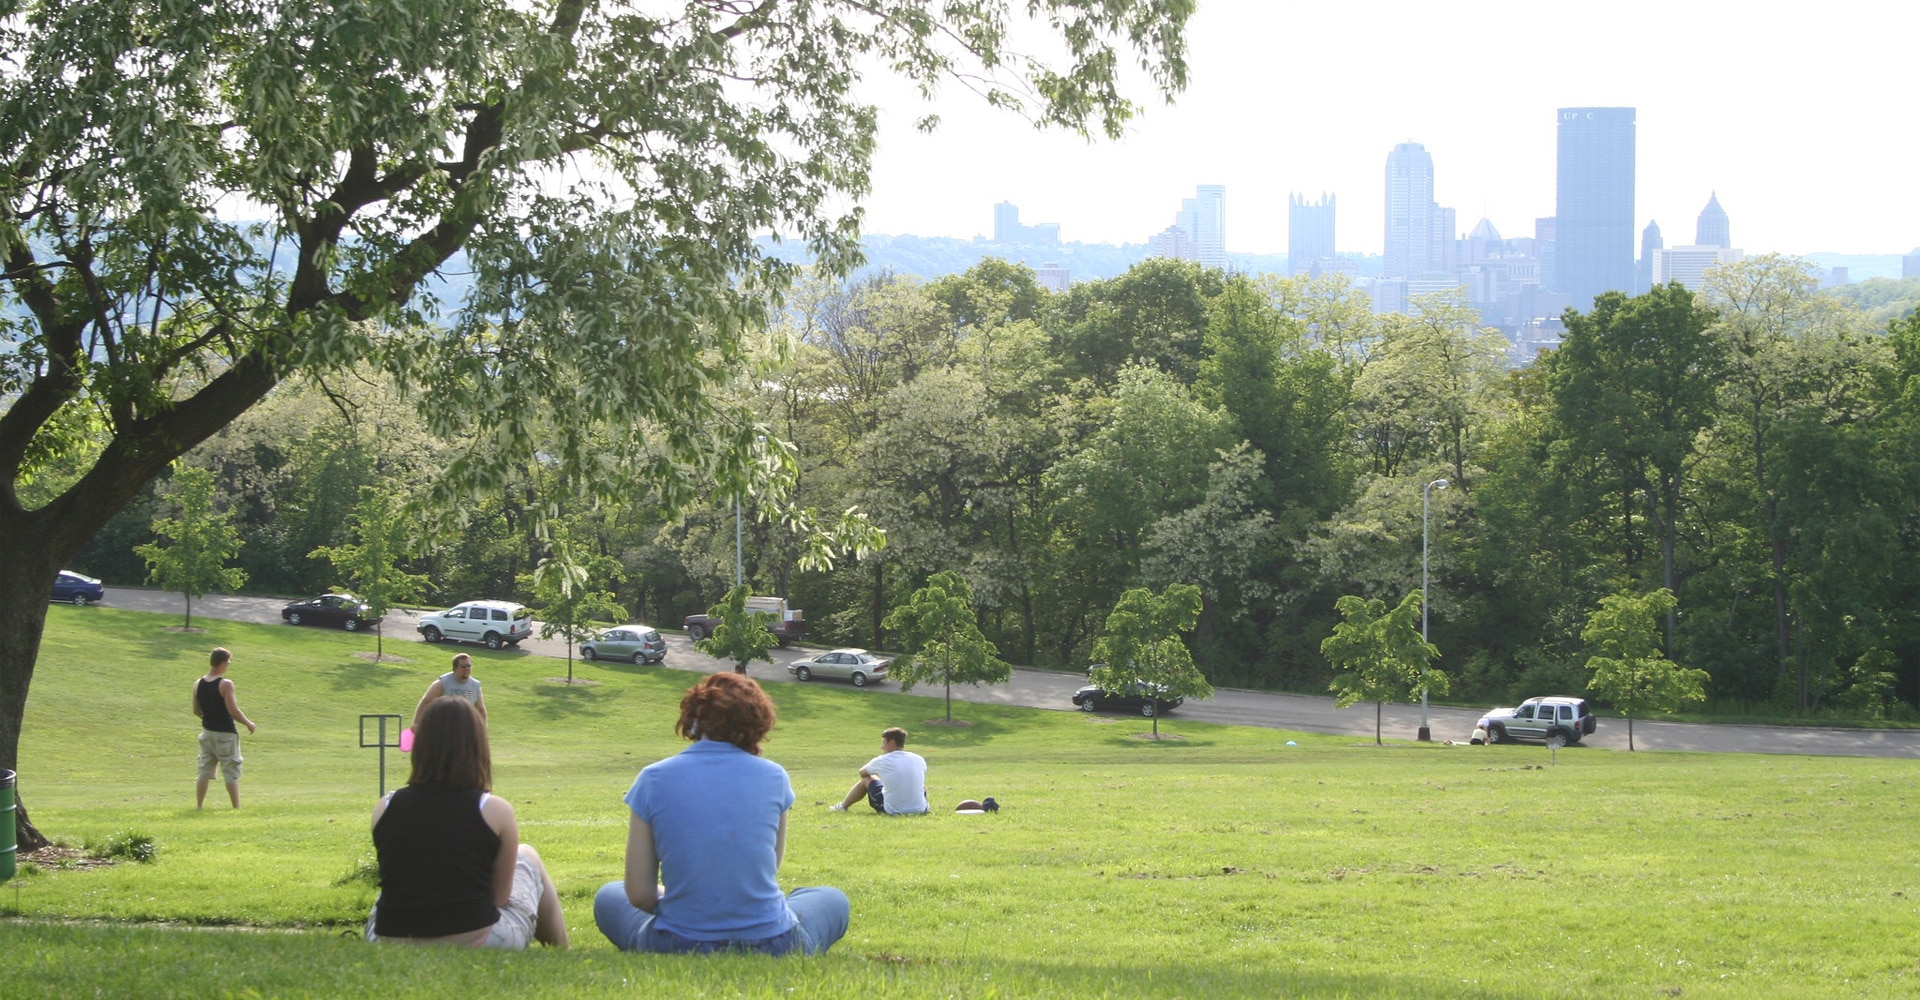 People sitting in a field in Schenley Park with the city skyline in the distance